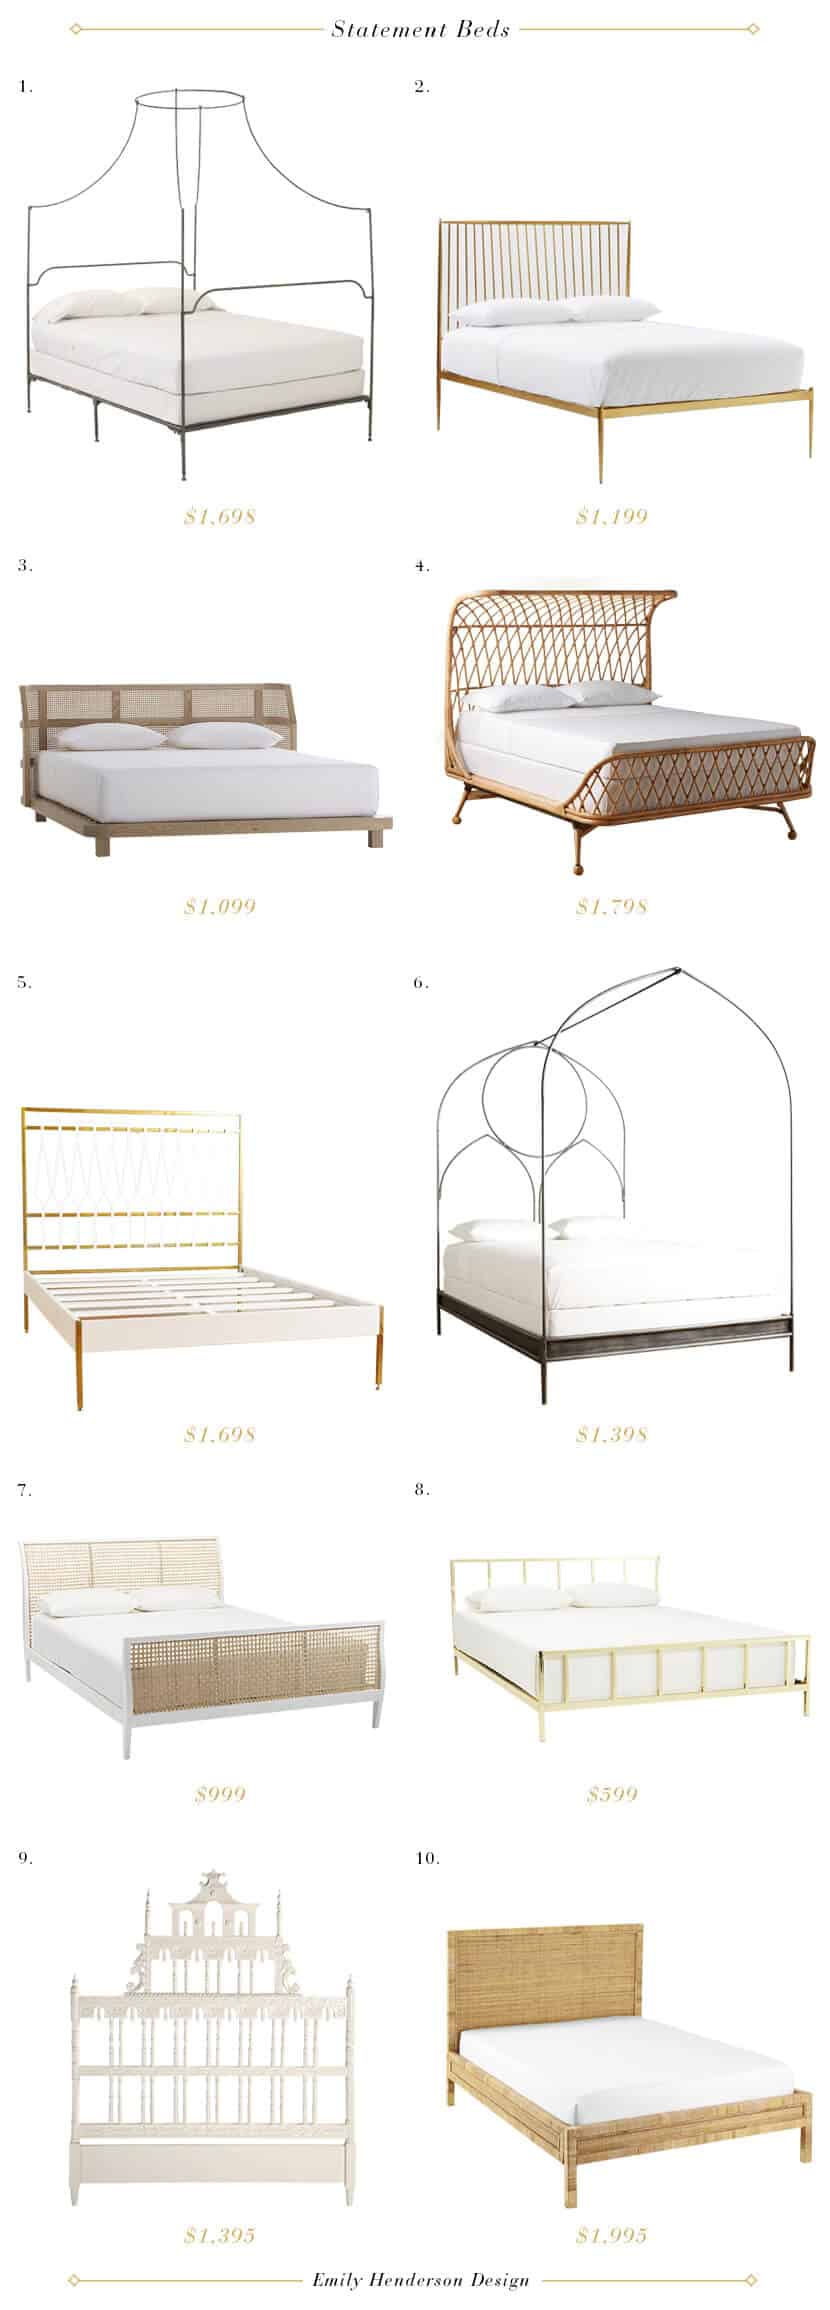 Emily Henderson Statement Beds